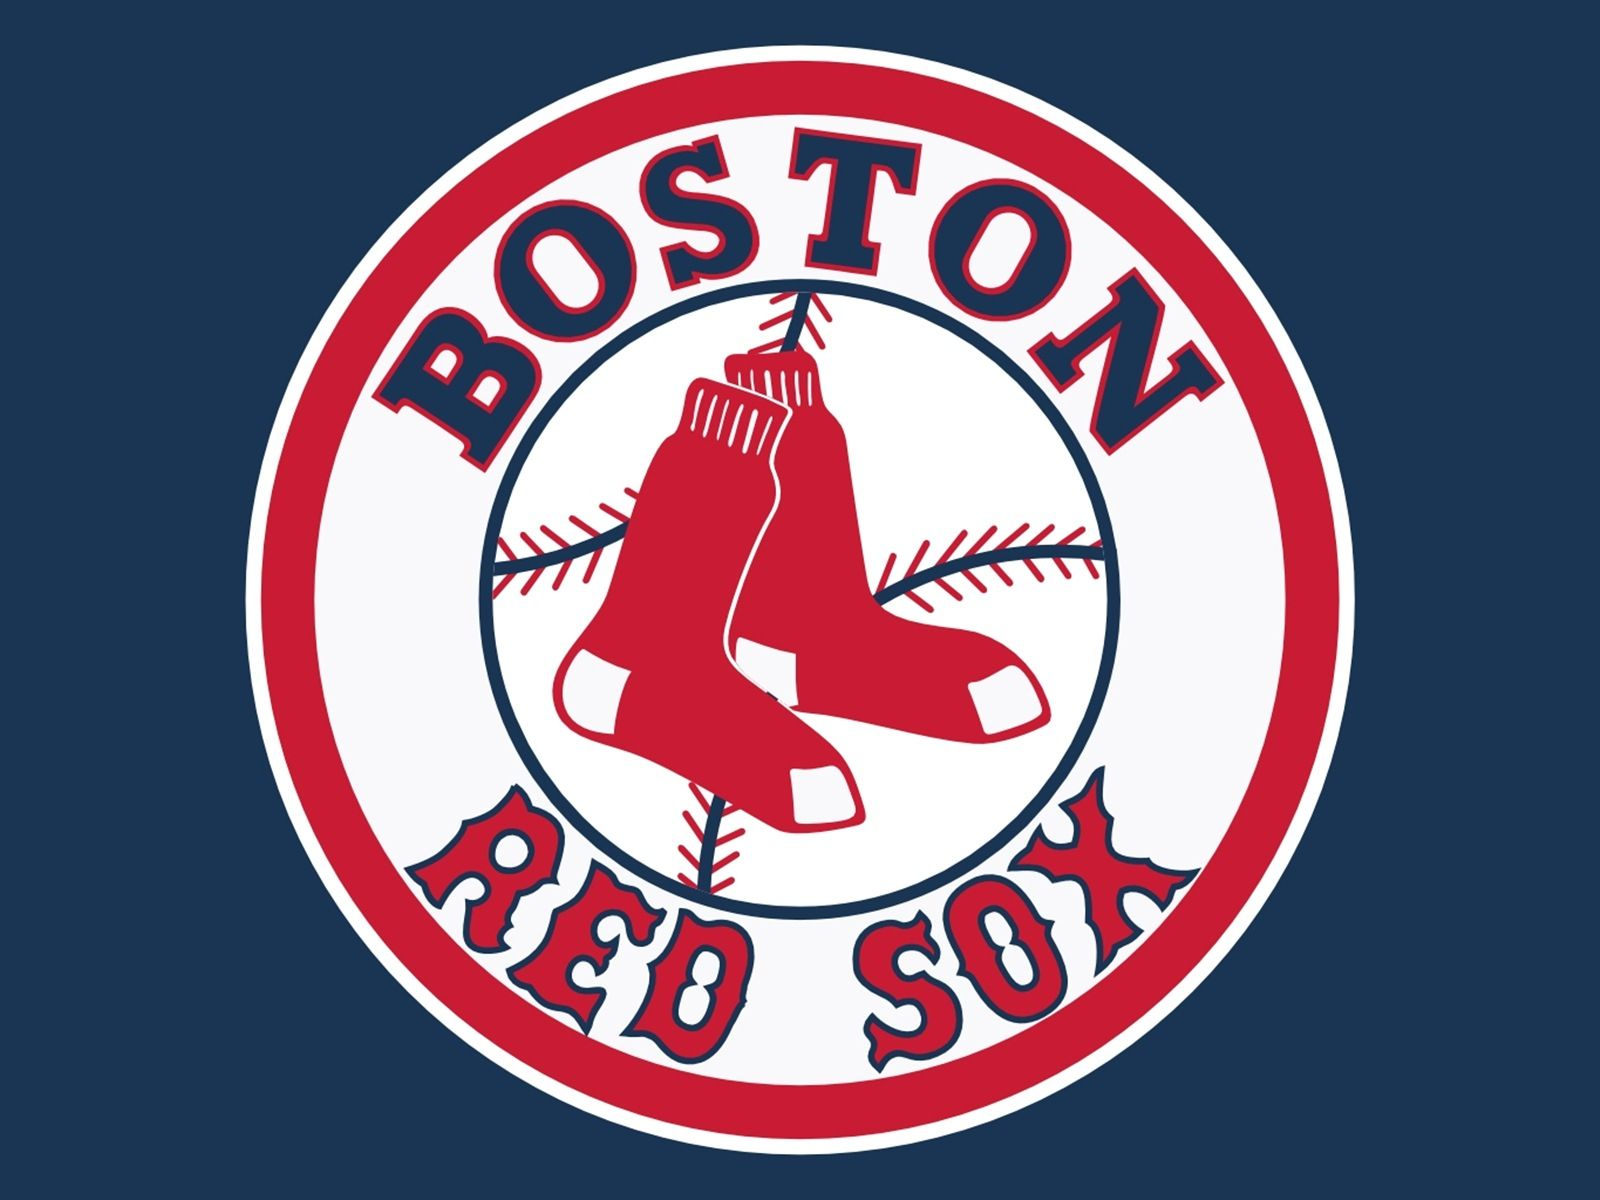 Boston Red Sox Logo Wallpaper Free Download Clip Art Free.